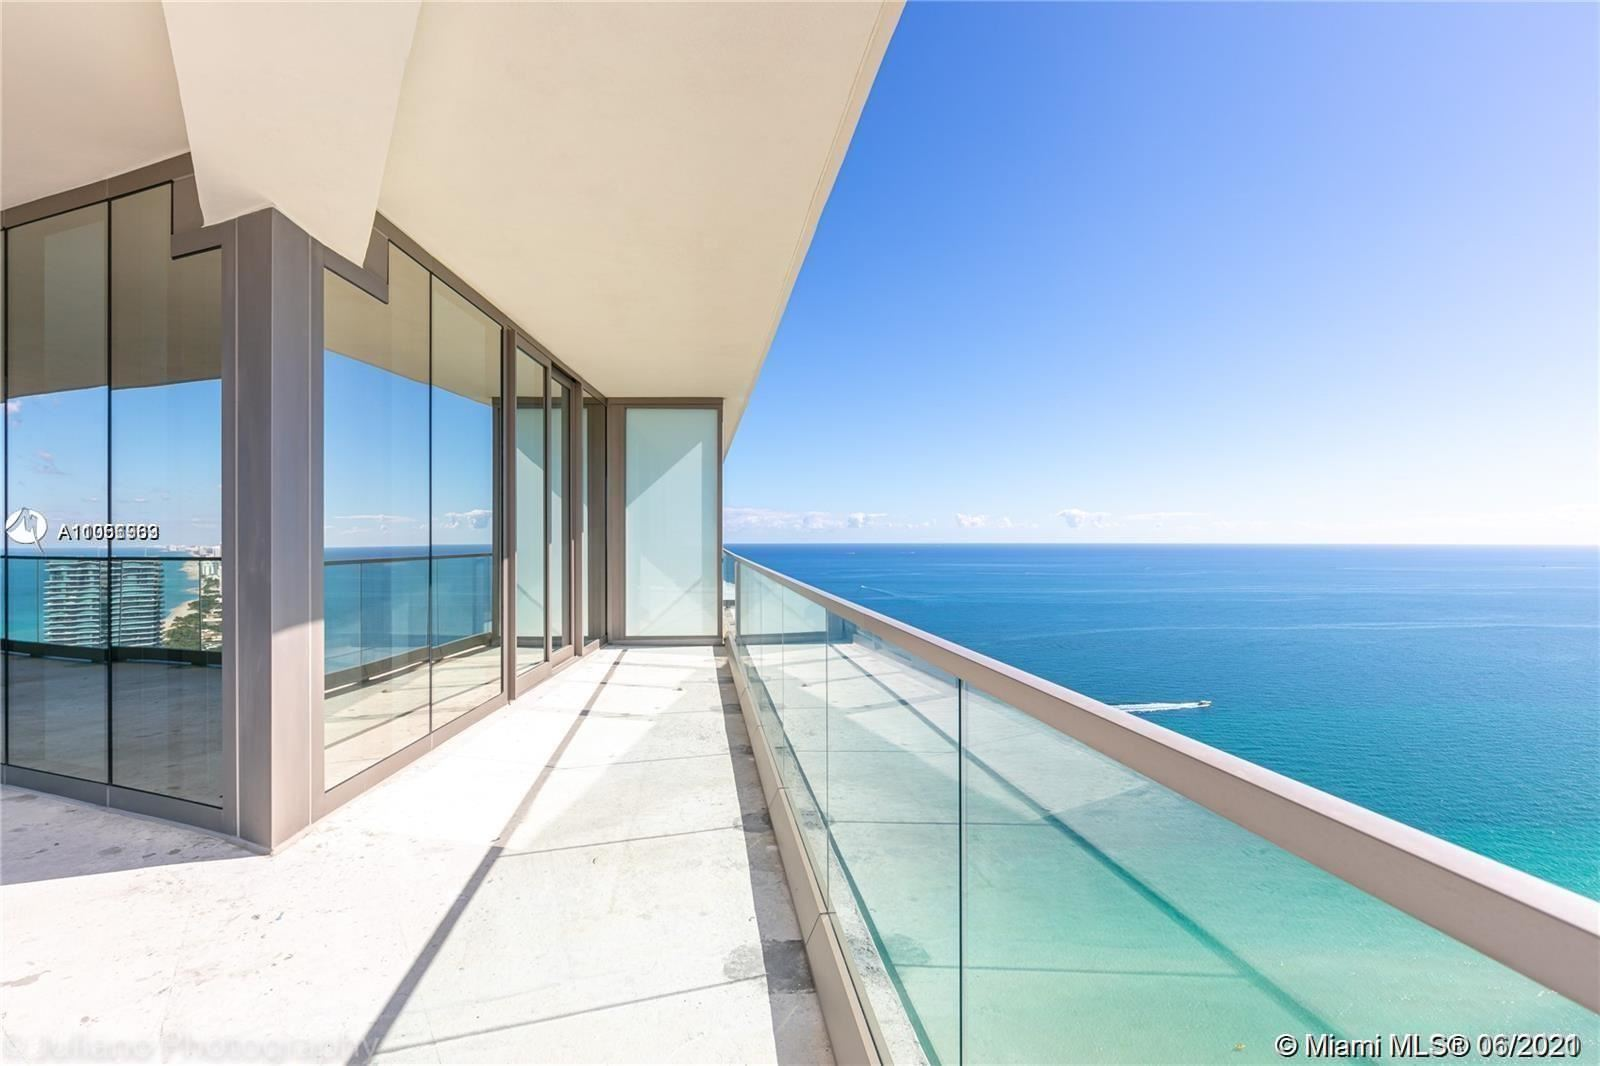 18975 Collins Ave #1805, Sunny Isles, FL 33160 - #: A11056939